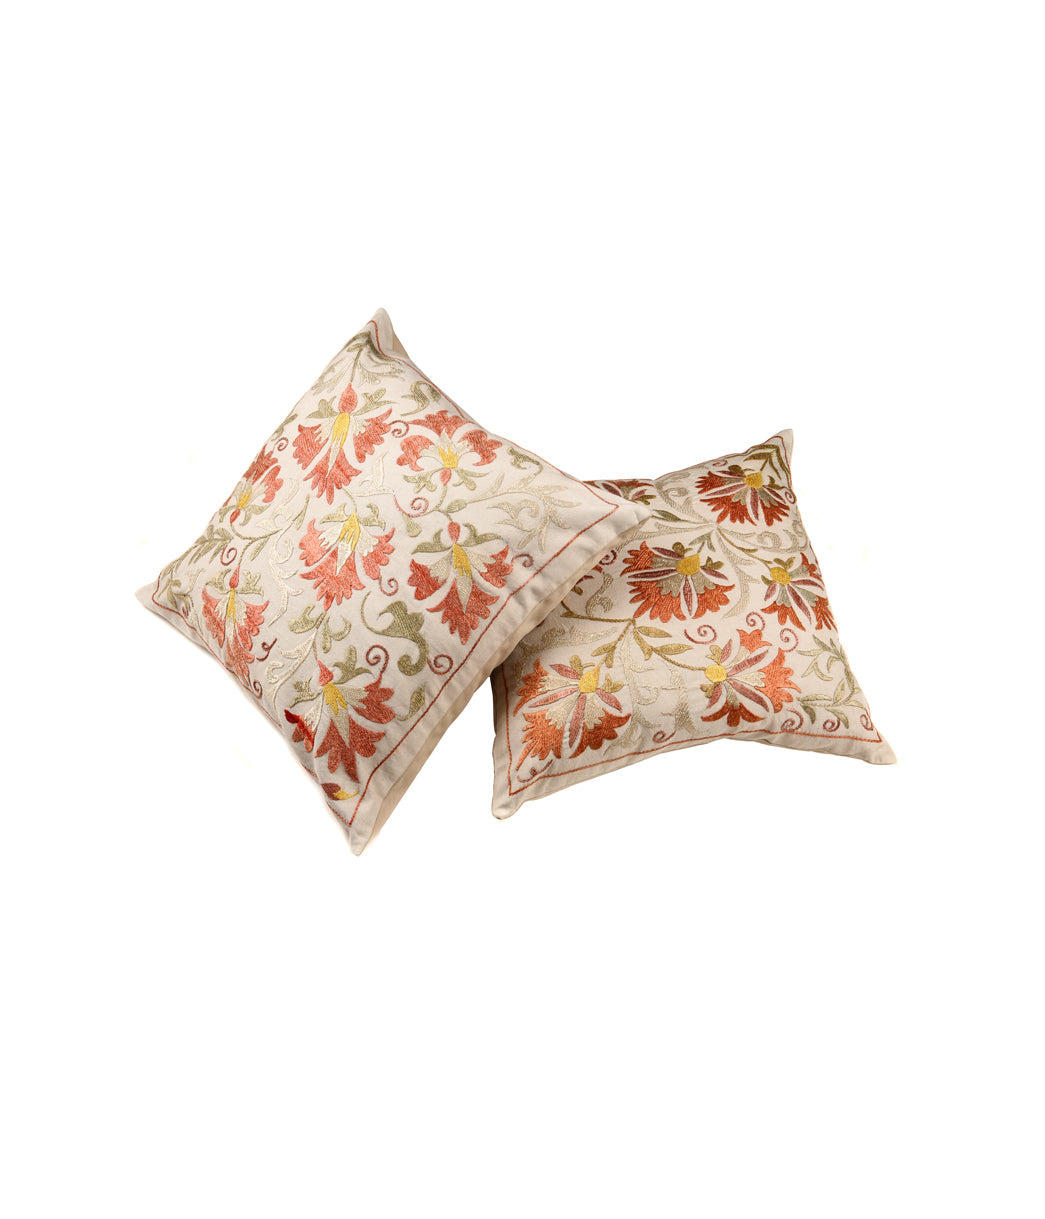 Moonriver orange flower embroided cushion